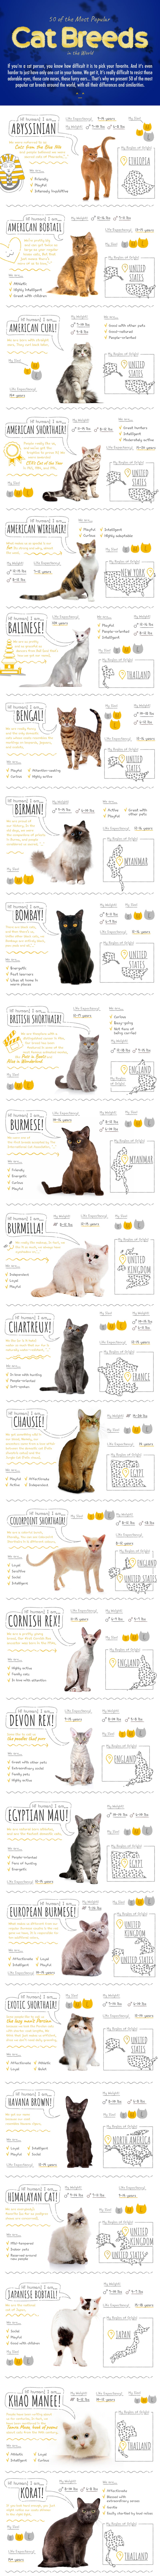 50 of the Most Popular Cat Breeds in the World (Infographic) (1)